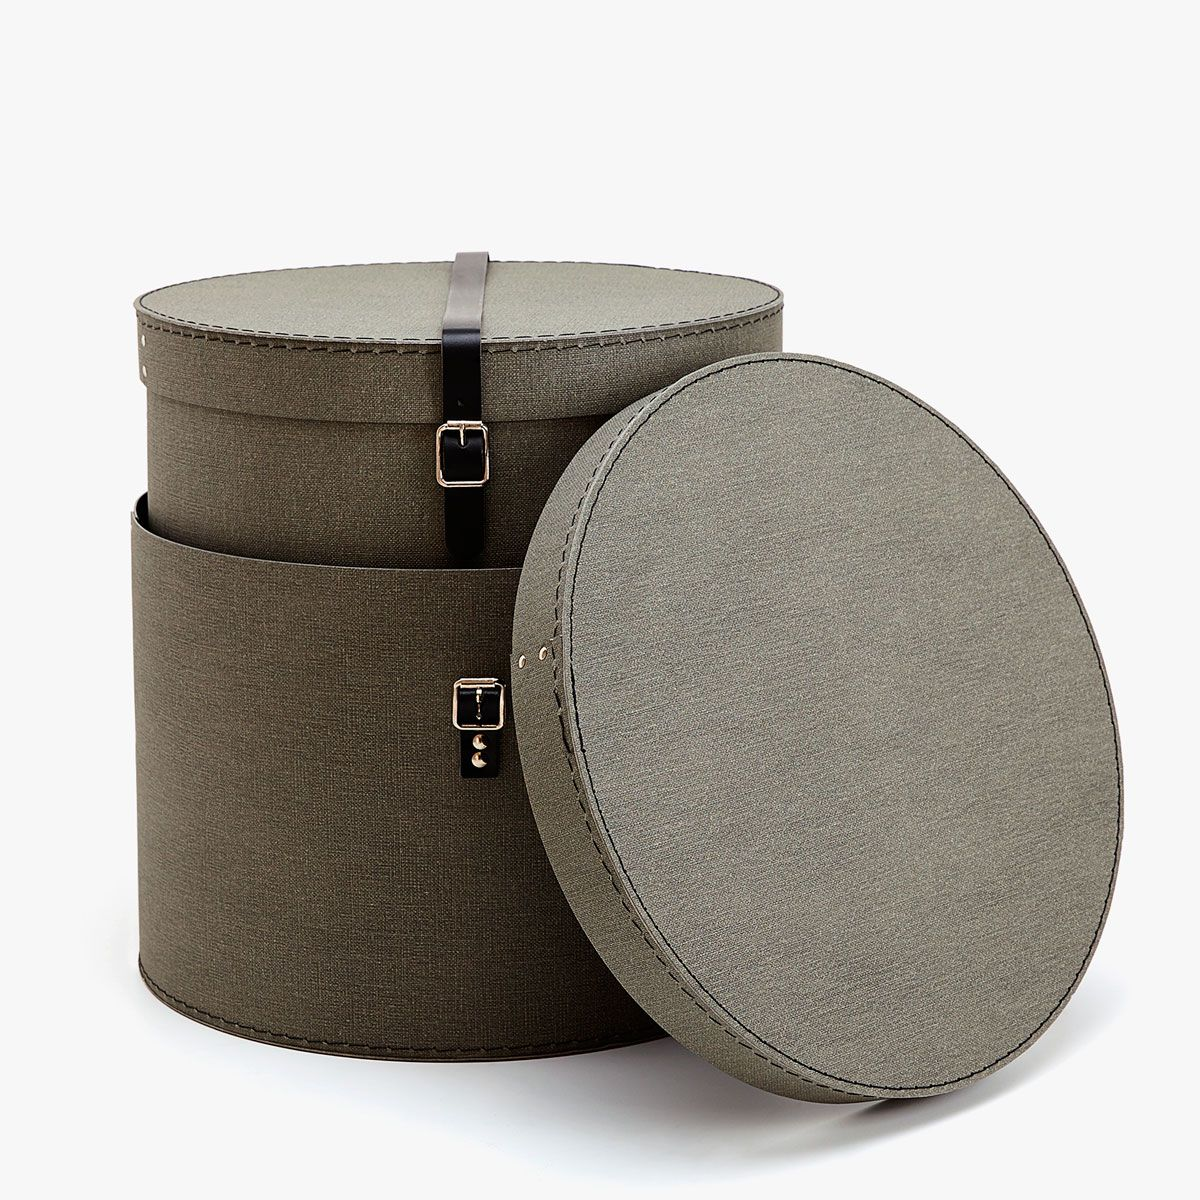 Good ROUND BELTED BOX   Boxes   Decoration | Zara Home Suomi / Finland